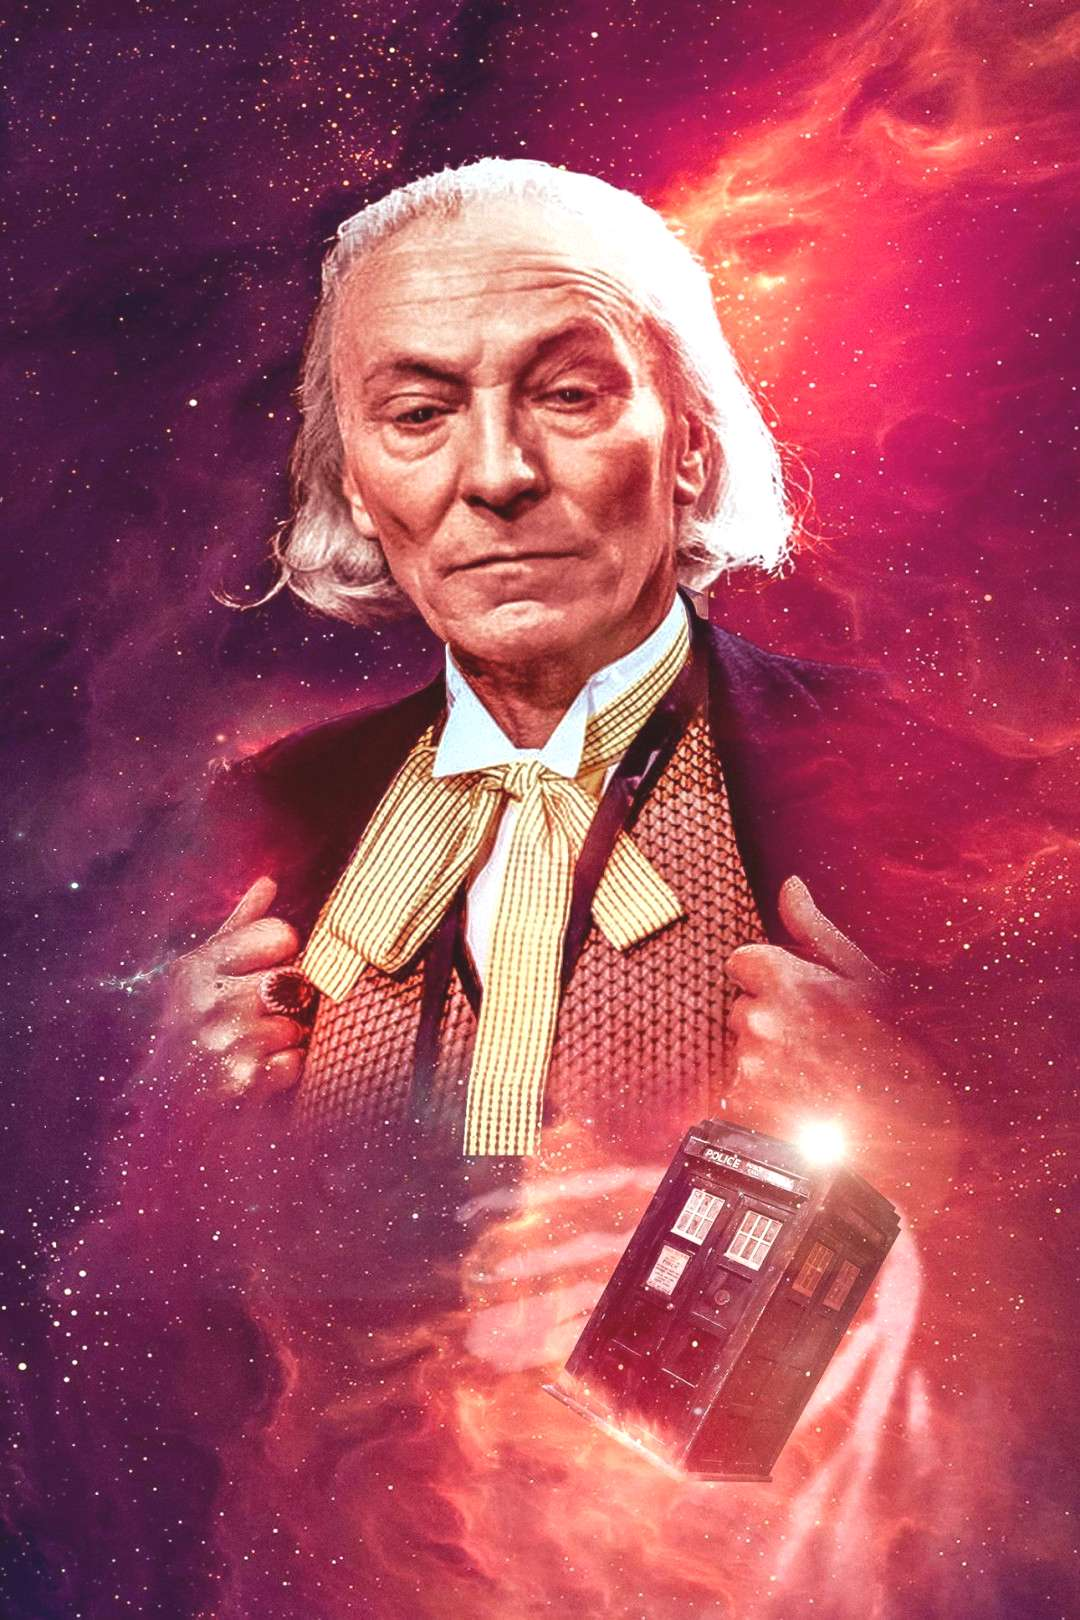 William Hartnell, The First Doctor. DOCTOR WHO (1963-1966) Classic Series